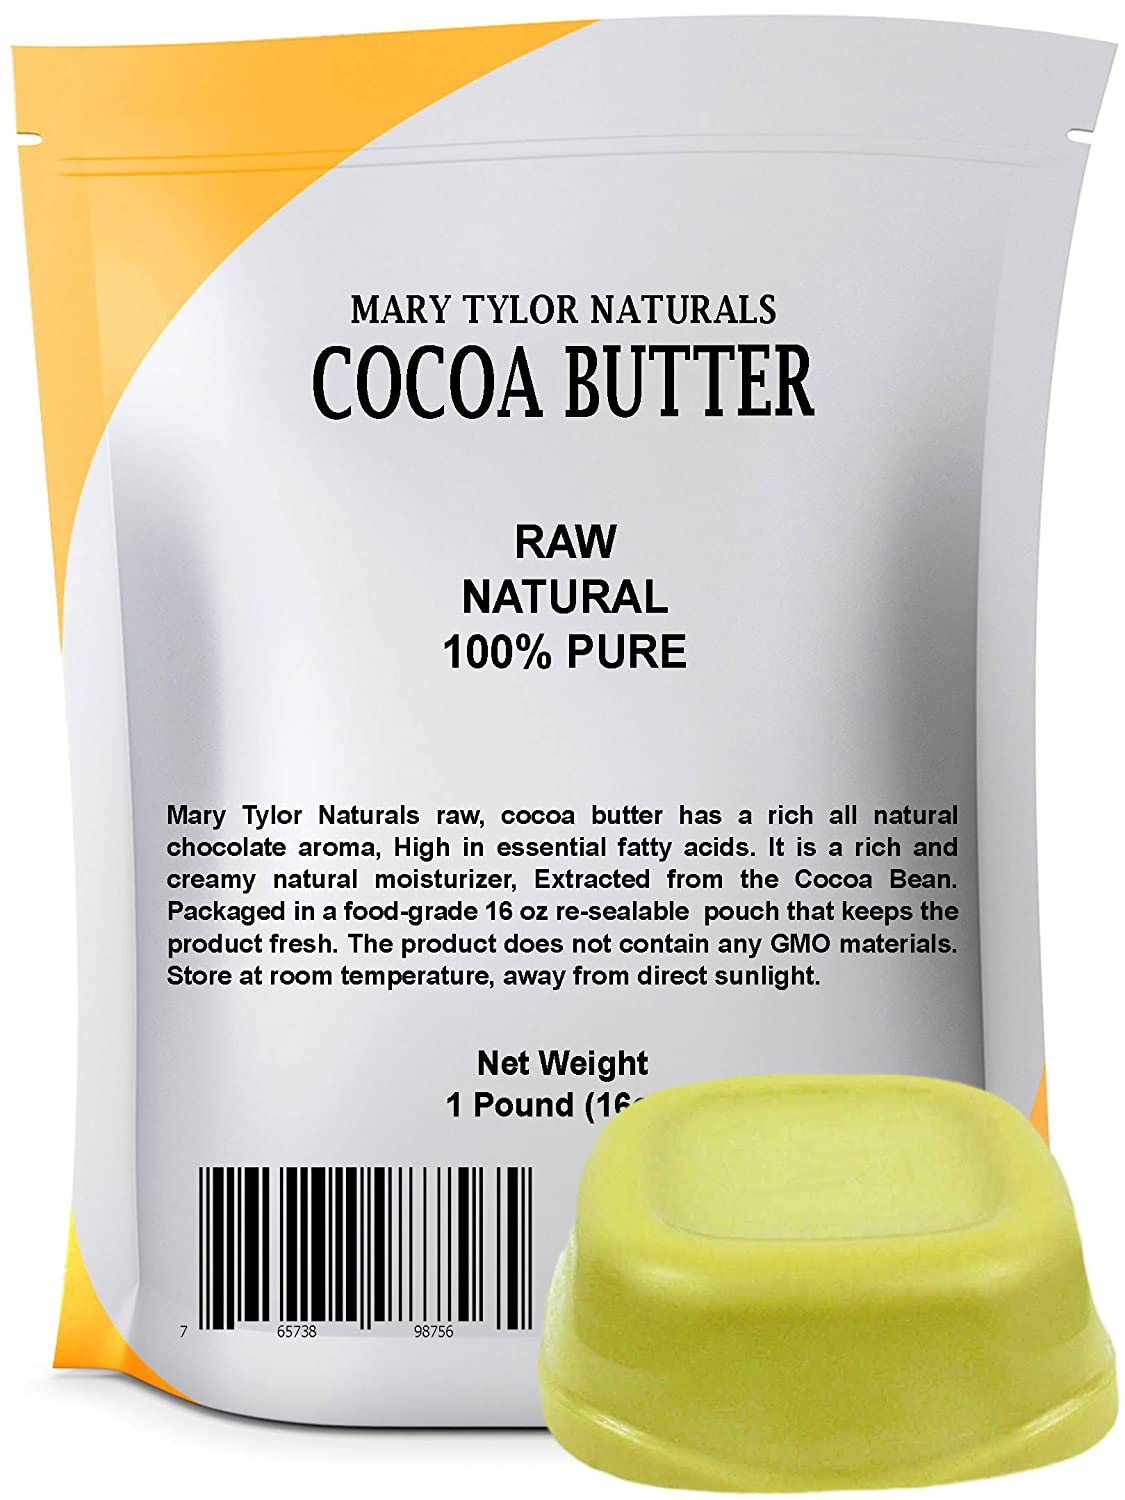 Mary Tylor Naturals Organic Cocoa Butter Large 1 lb Bar, Raw Unrefined Food Grade, Non-Deodorized, Rich In Antioxidants Great For DIY Recipes, Lip Balms, Lotions, Creams, Stretch Marks CB-0008oz